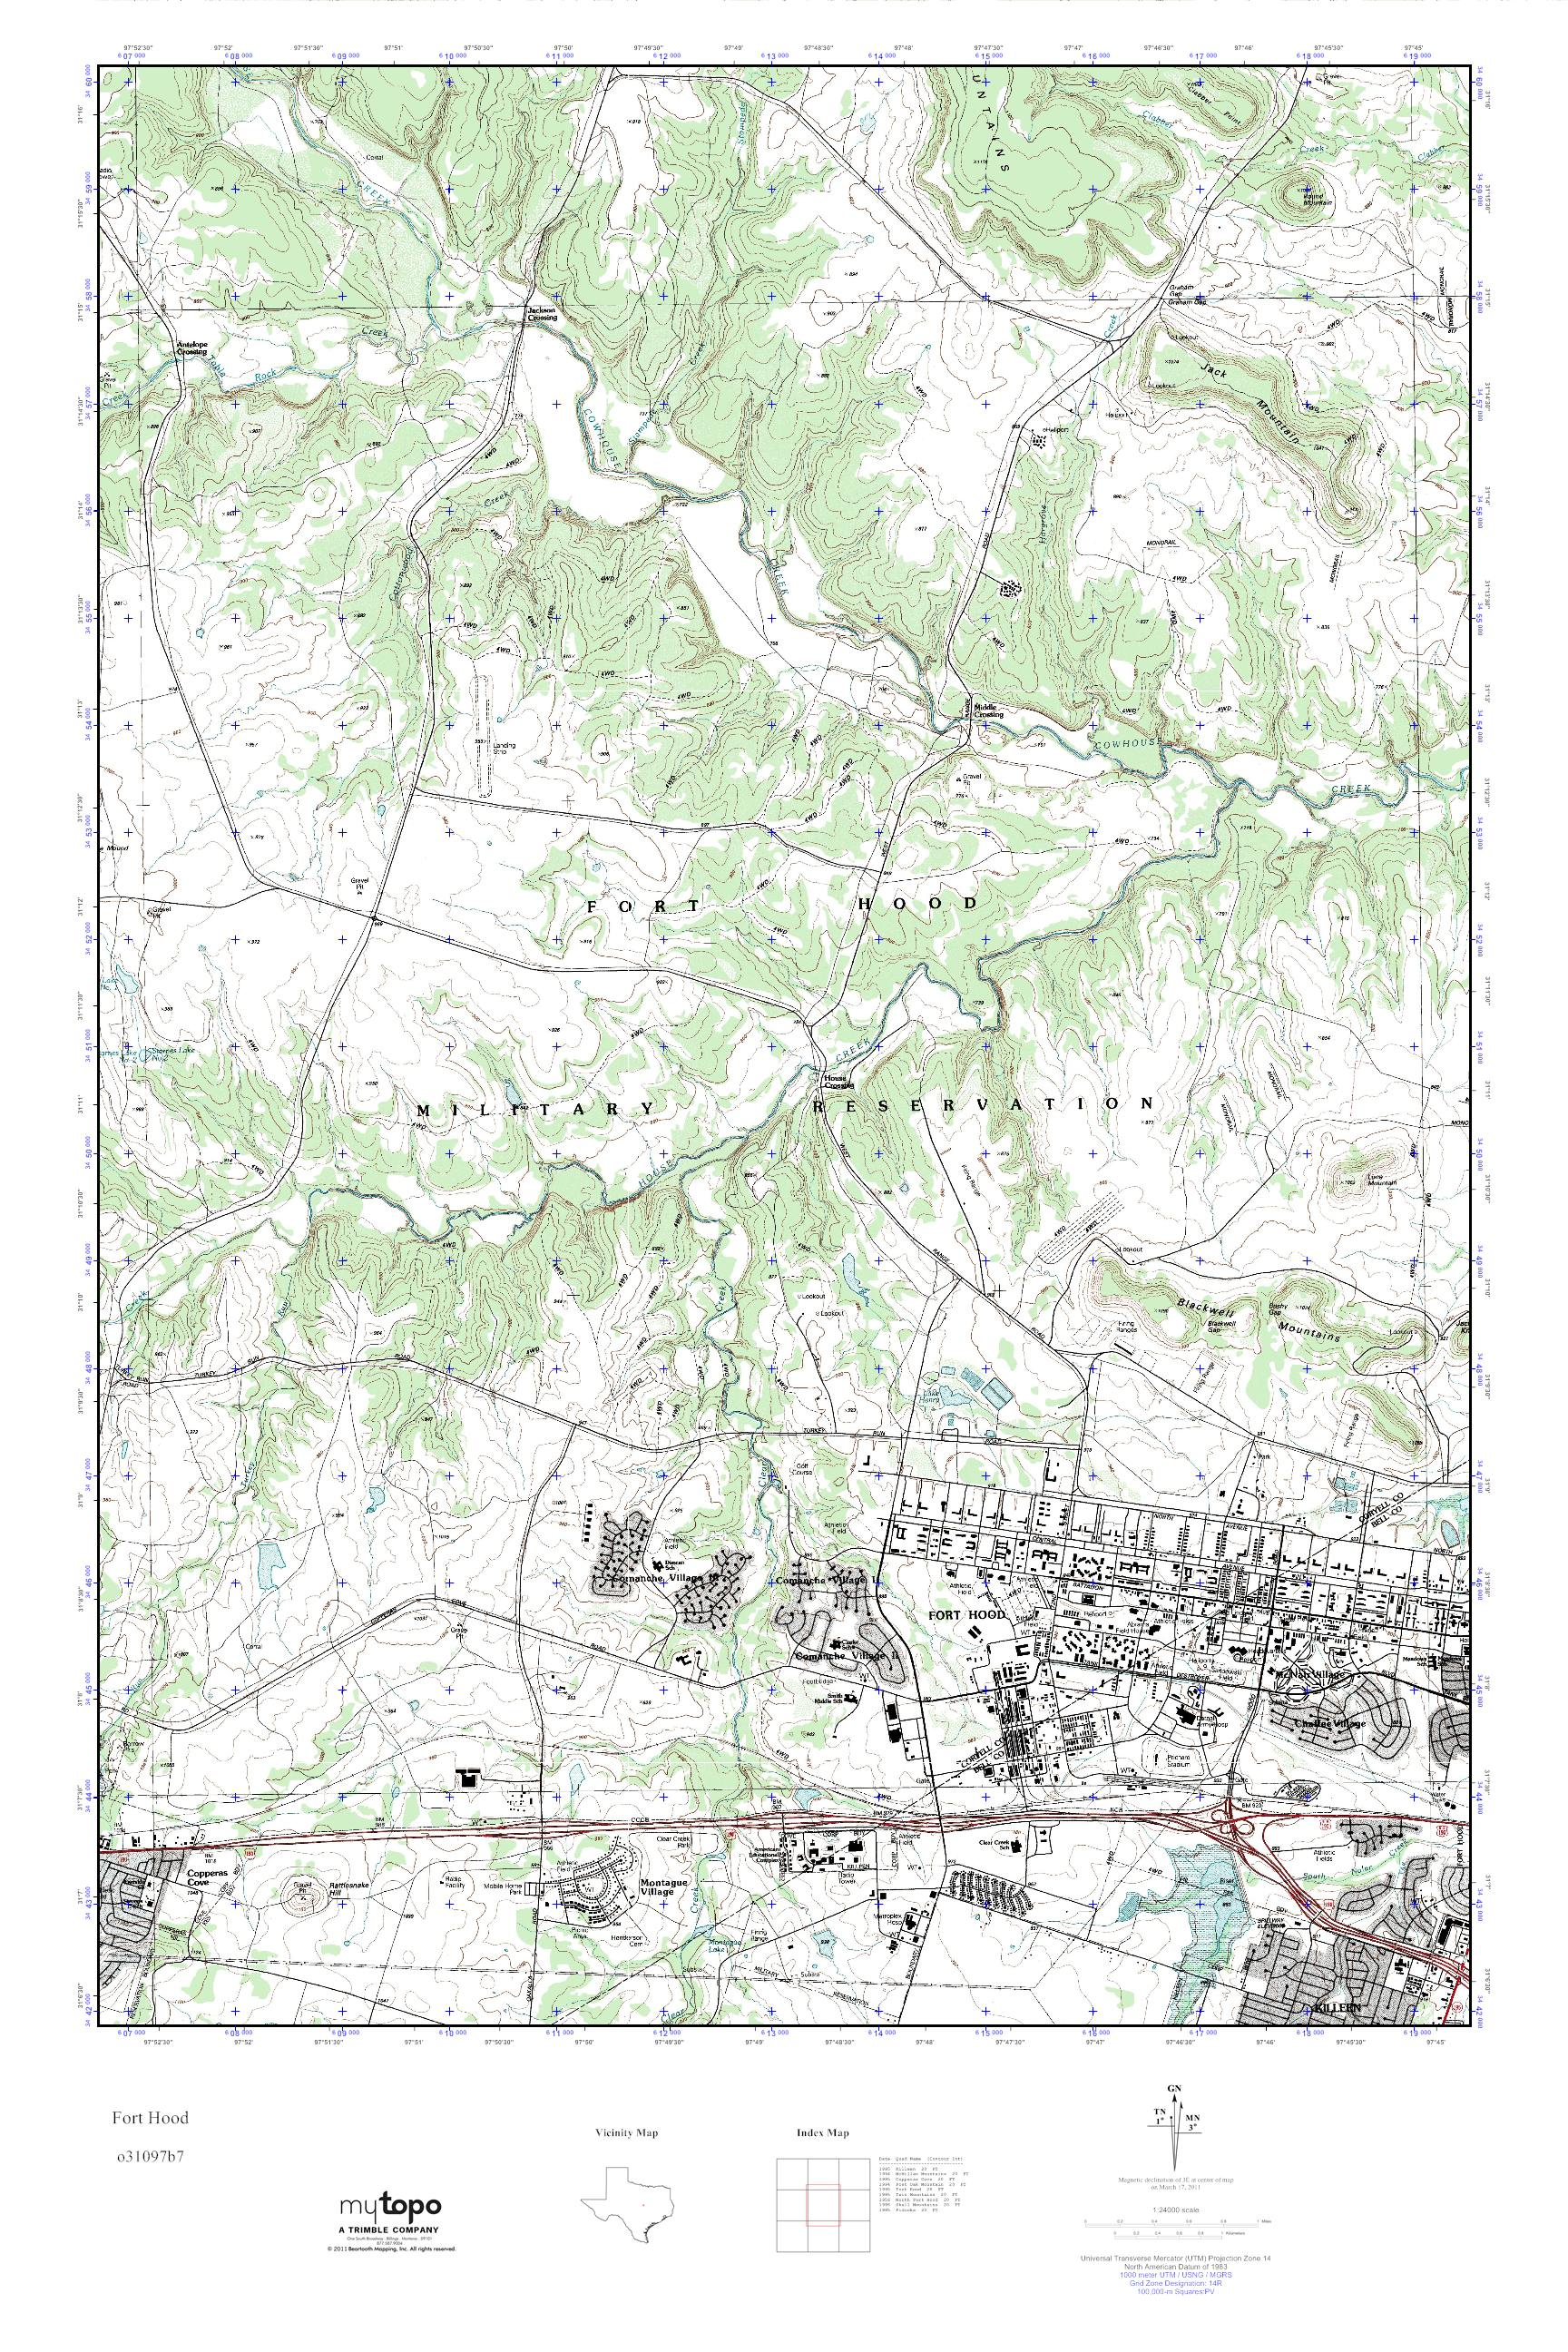 Mytopo Fort Hood, Texas Usgs Quad Topo Map - Fort Hood Texas Map